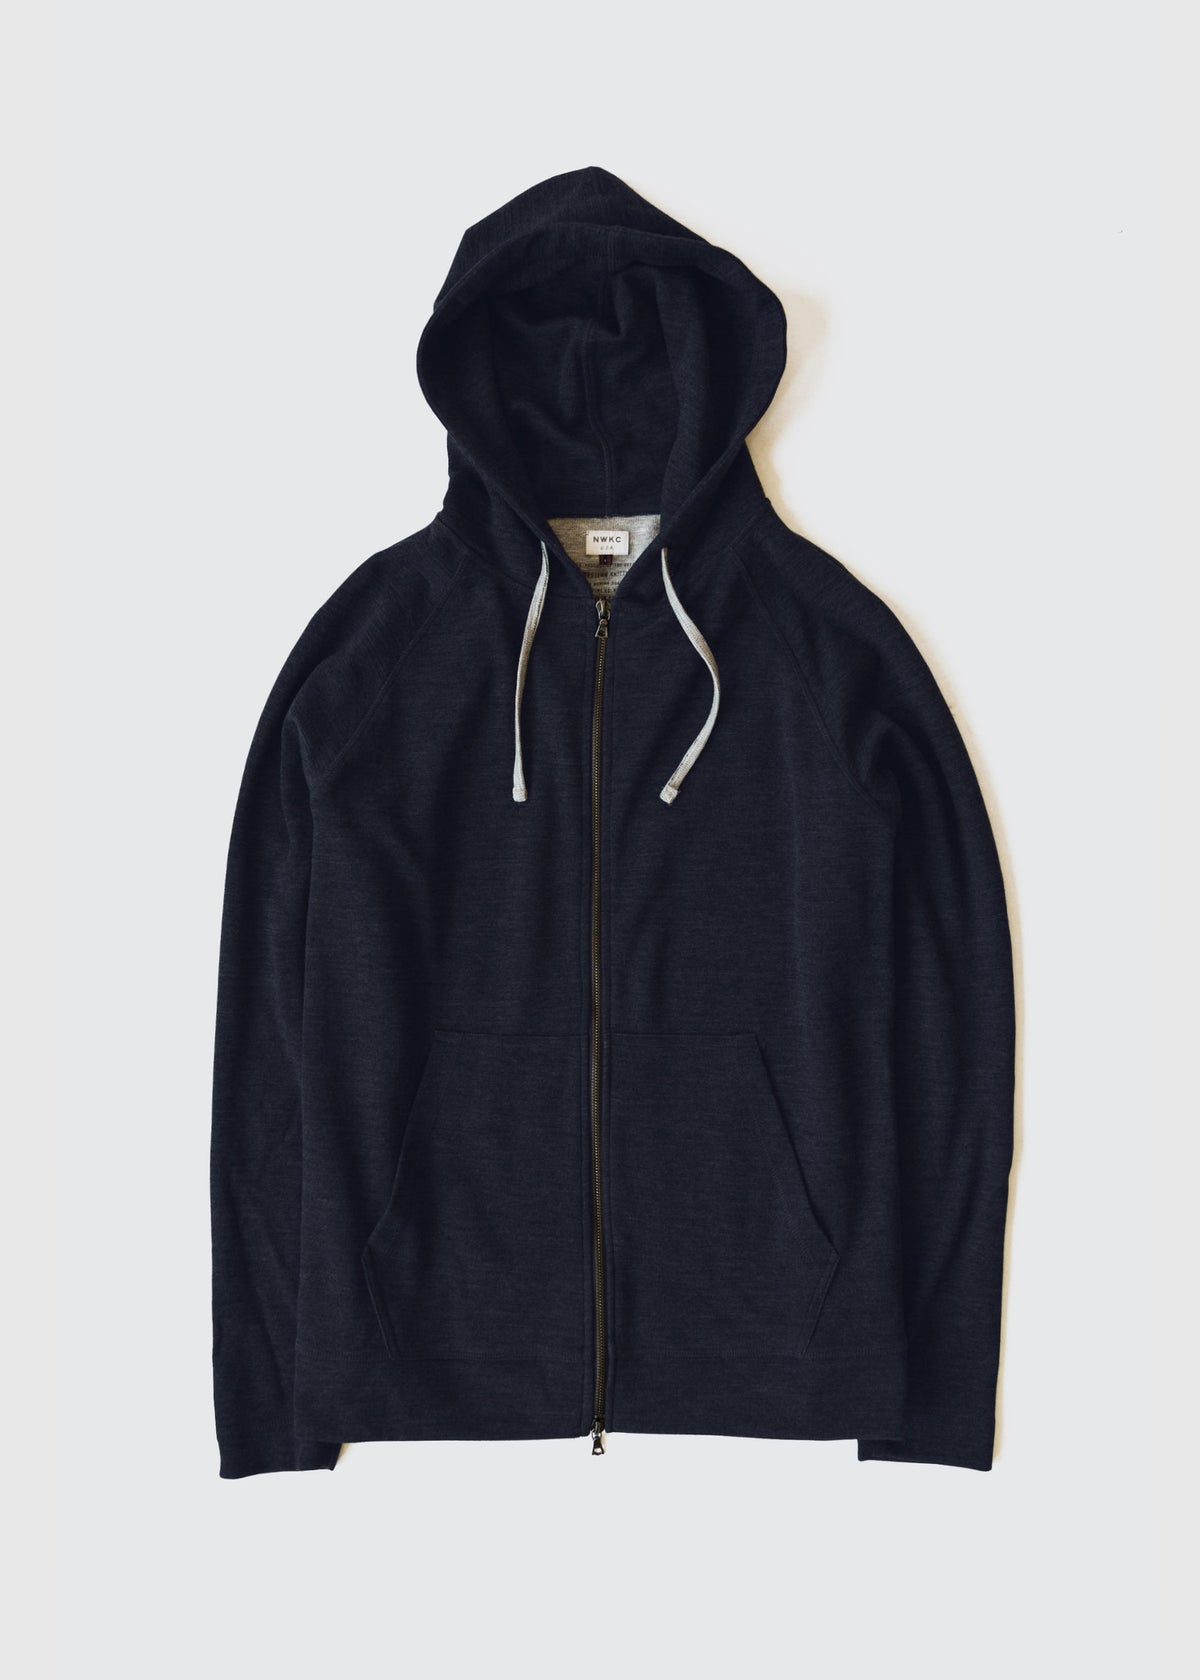 006 - HOODED ZIP - NAVY - Wilson & Willy's - MPLS Neighbor Goods